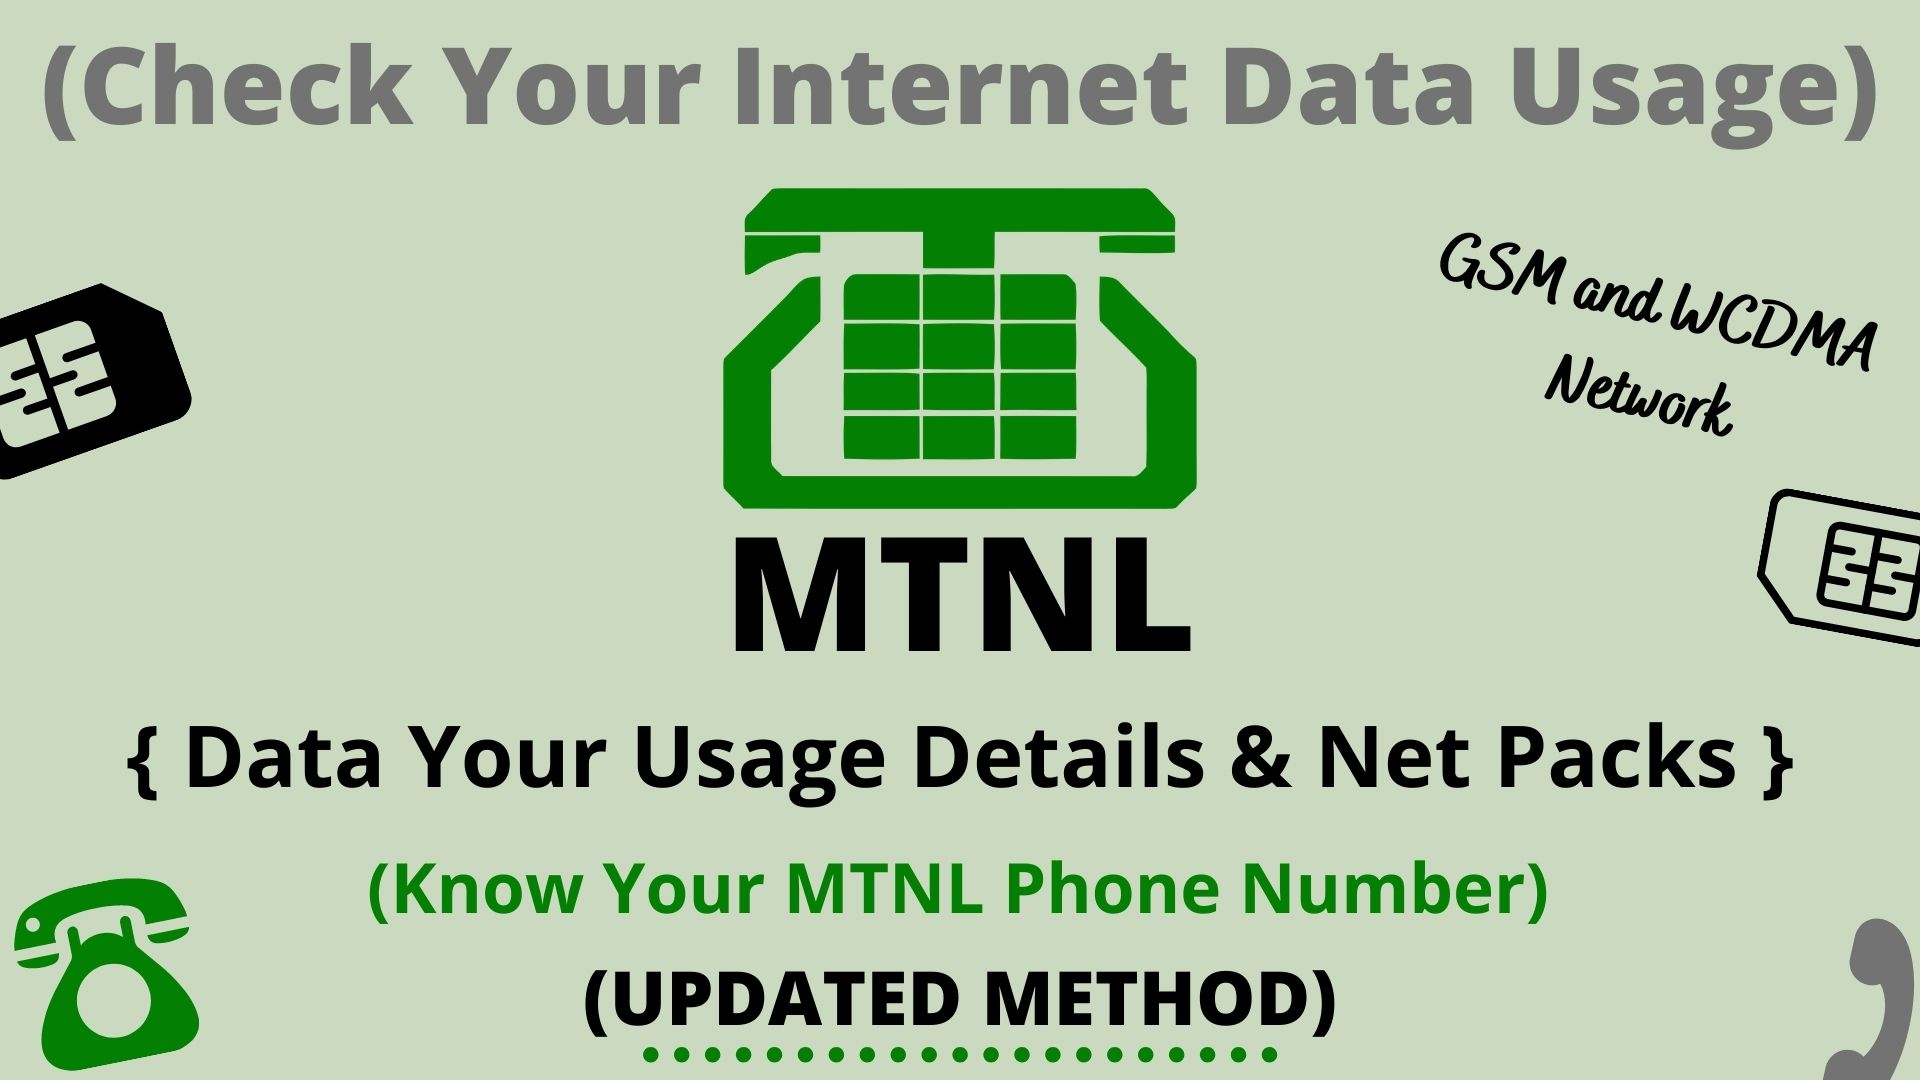 Check Your Internet Data Usage